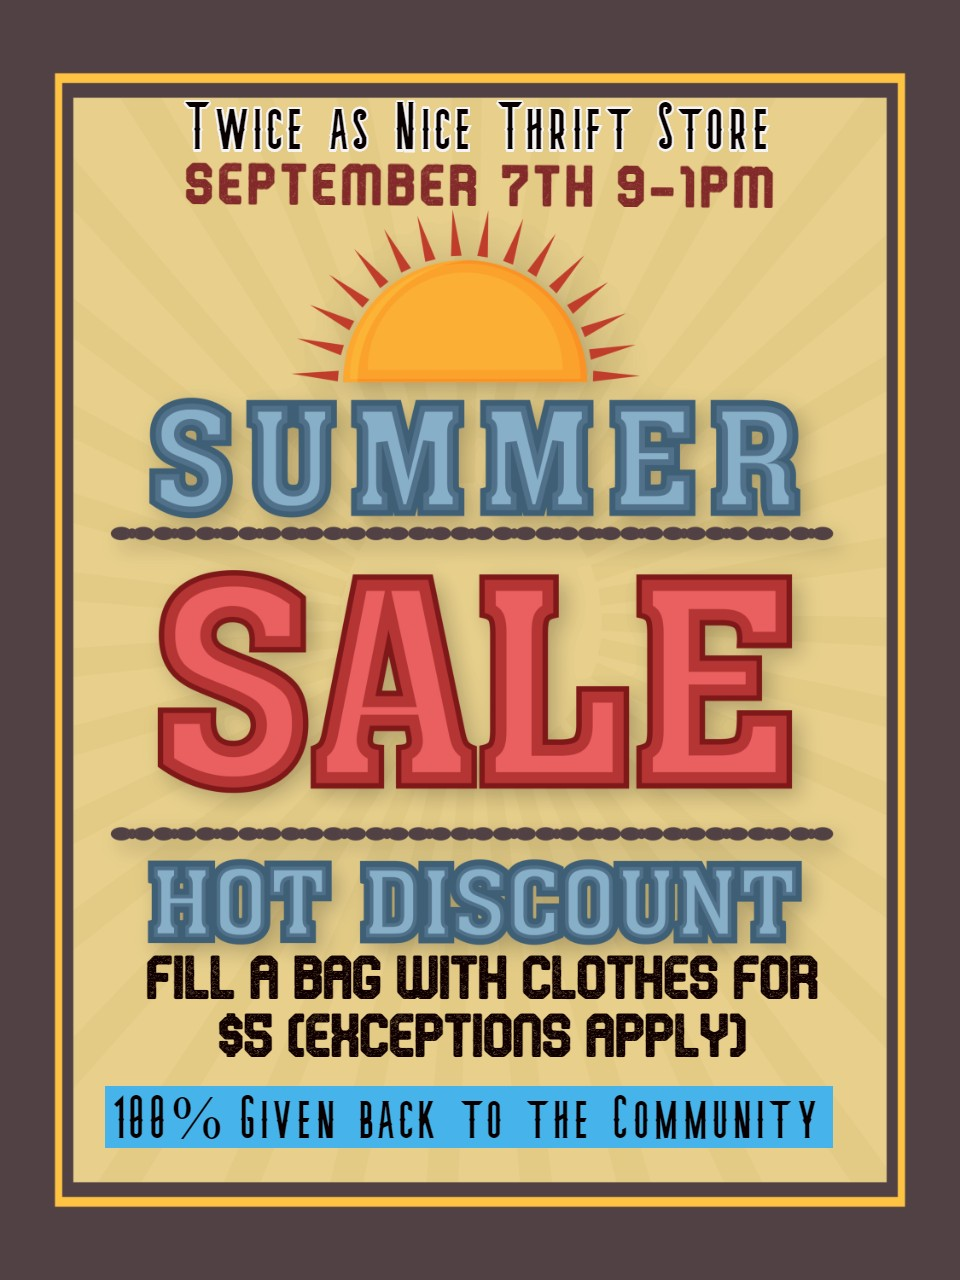 Twice as nice Thrift Store September 7, 2019 Sale a